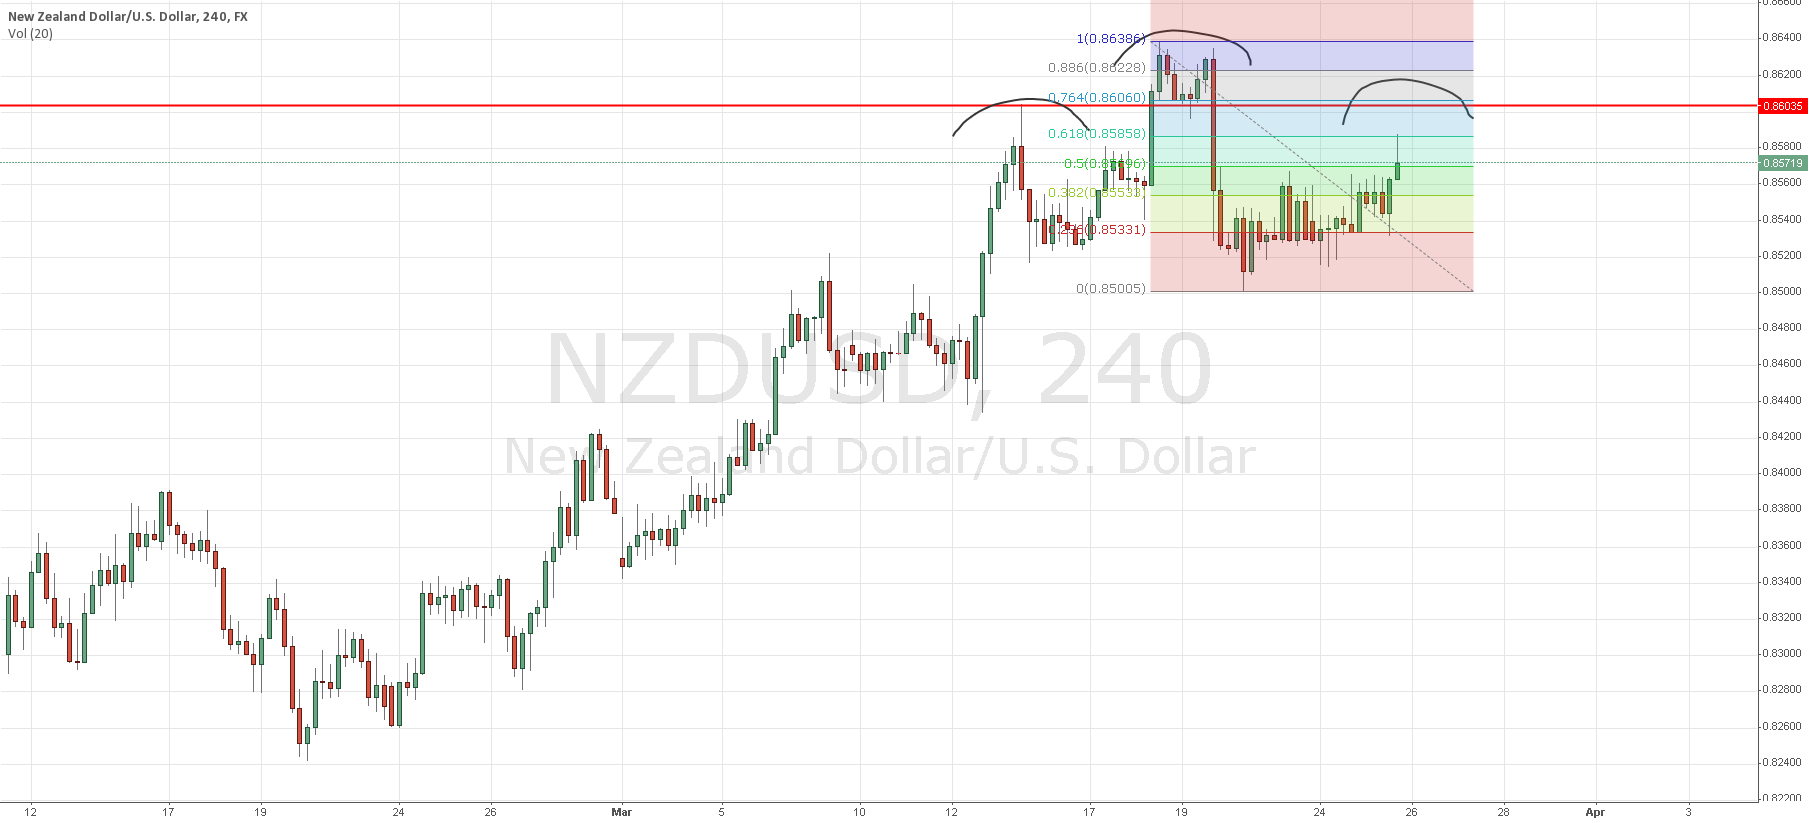 Pending Short NZD/USD at 0.860X, possible head and shoulder